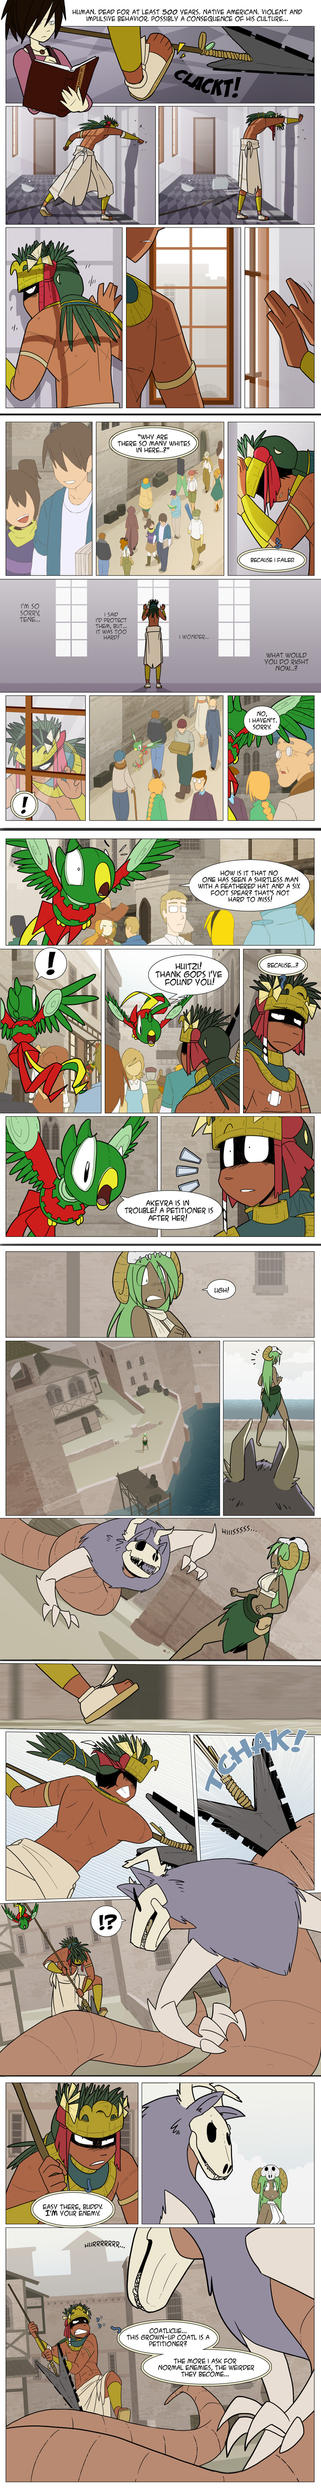 Burning Avalon Round 3: Page 5 by Tickity-Tock